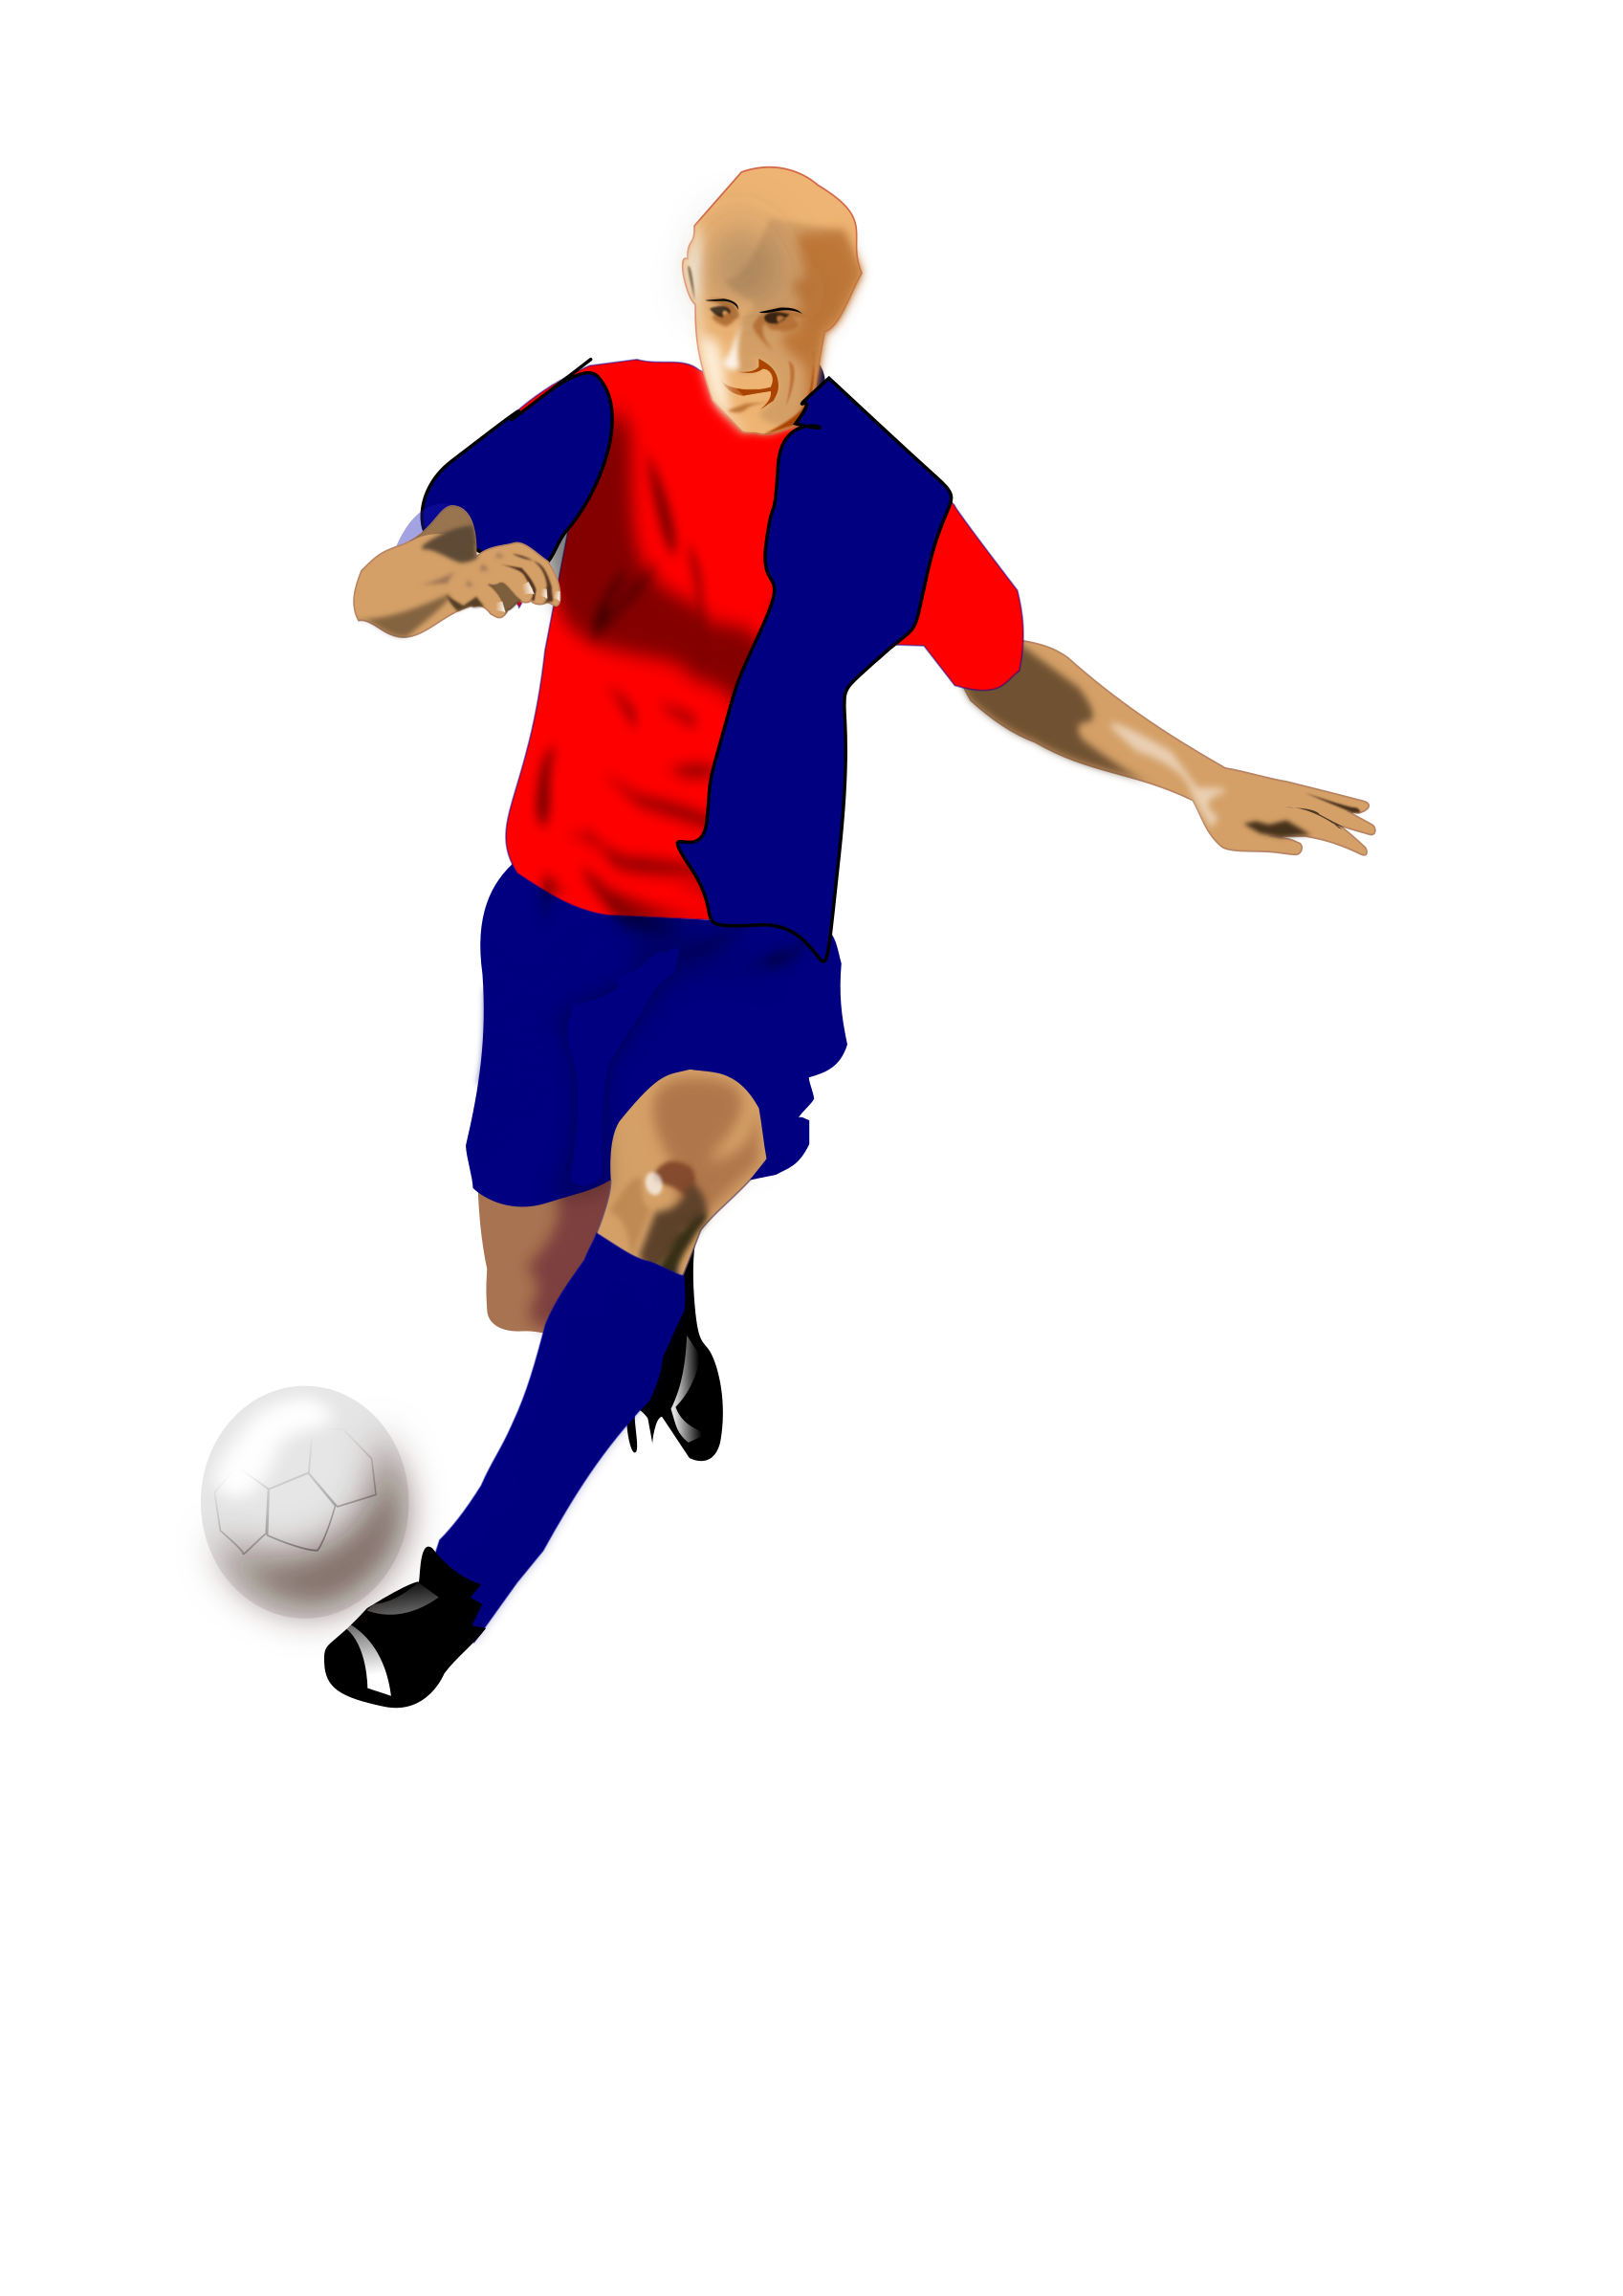 Knee clipart soccer injury. Rossoblu player big image